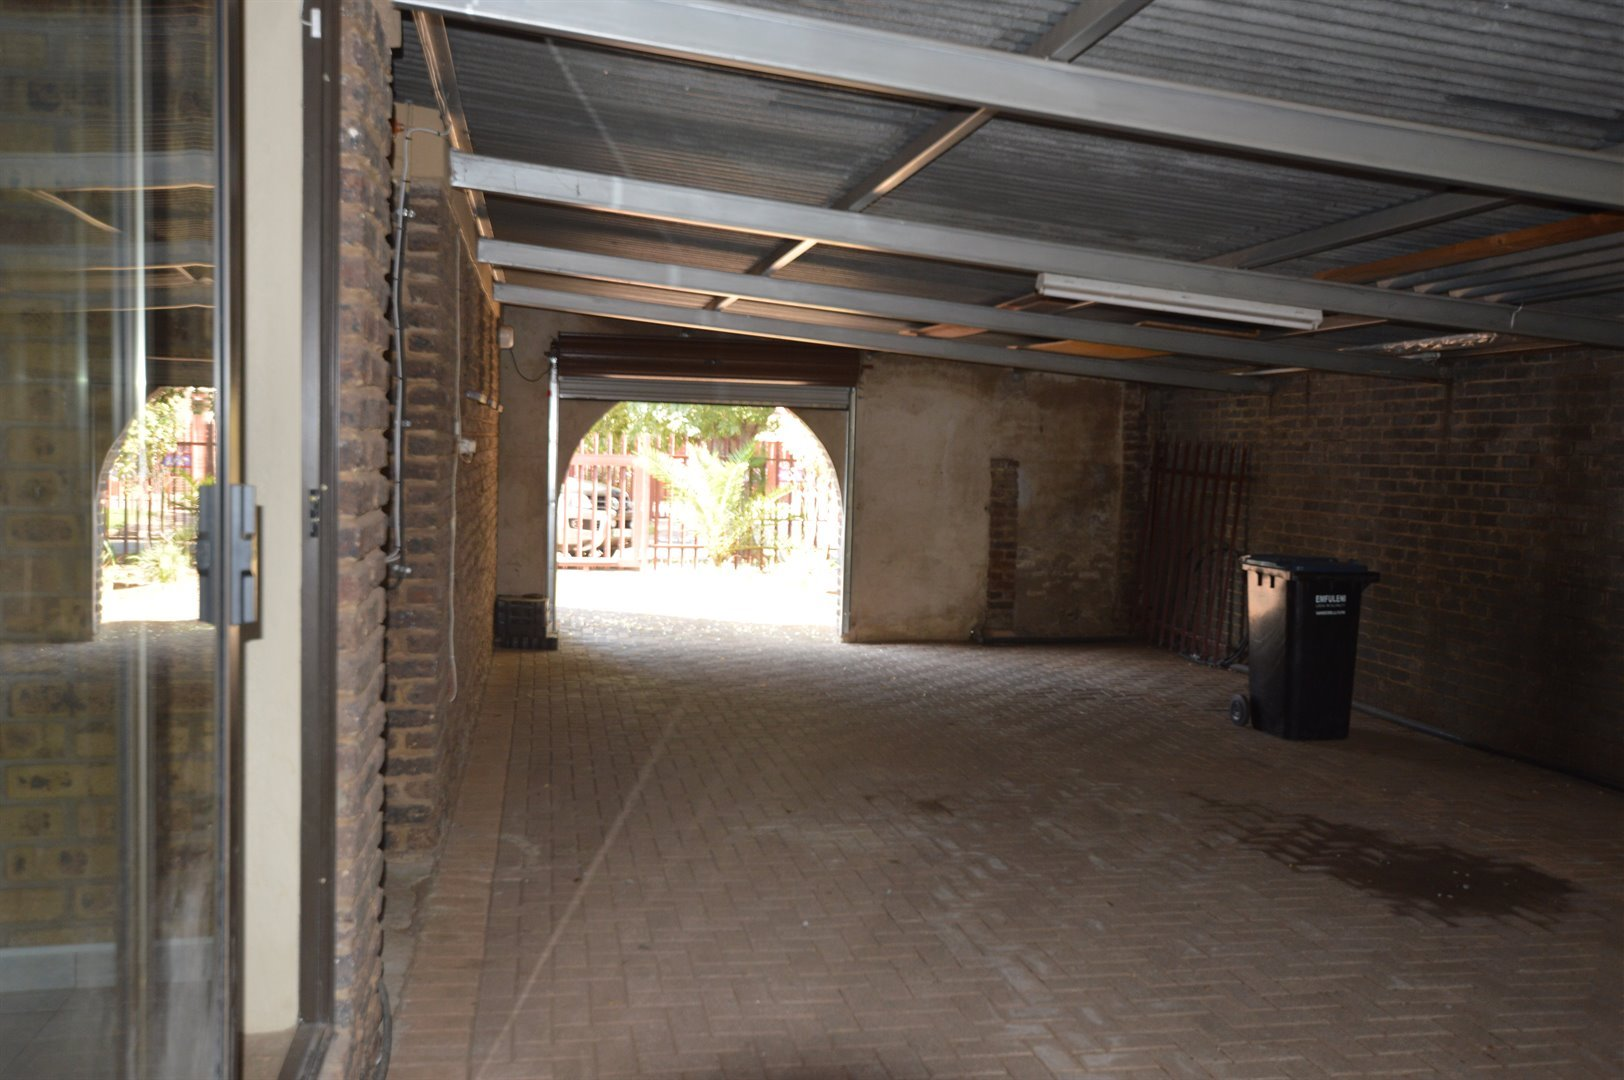 Vanderbijlpark Se 2 property for sale. Ref No: 13623209. Picture no 36